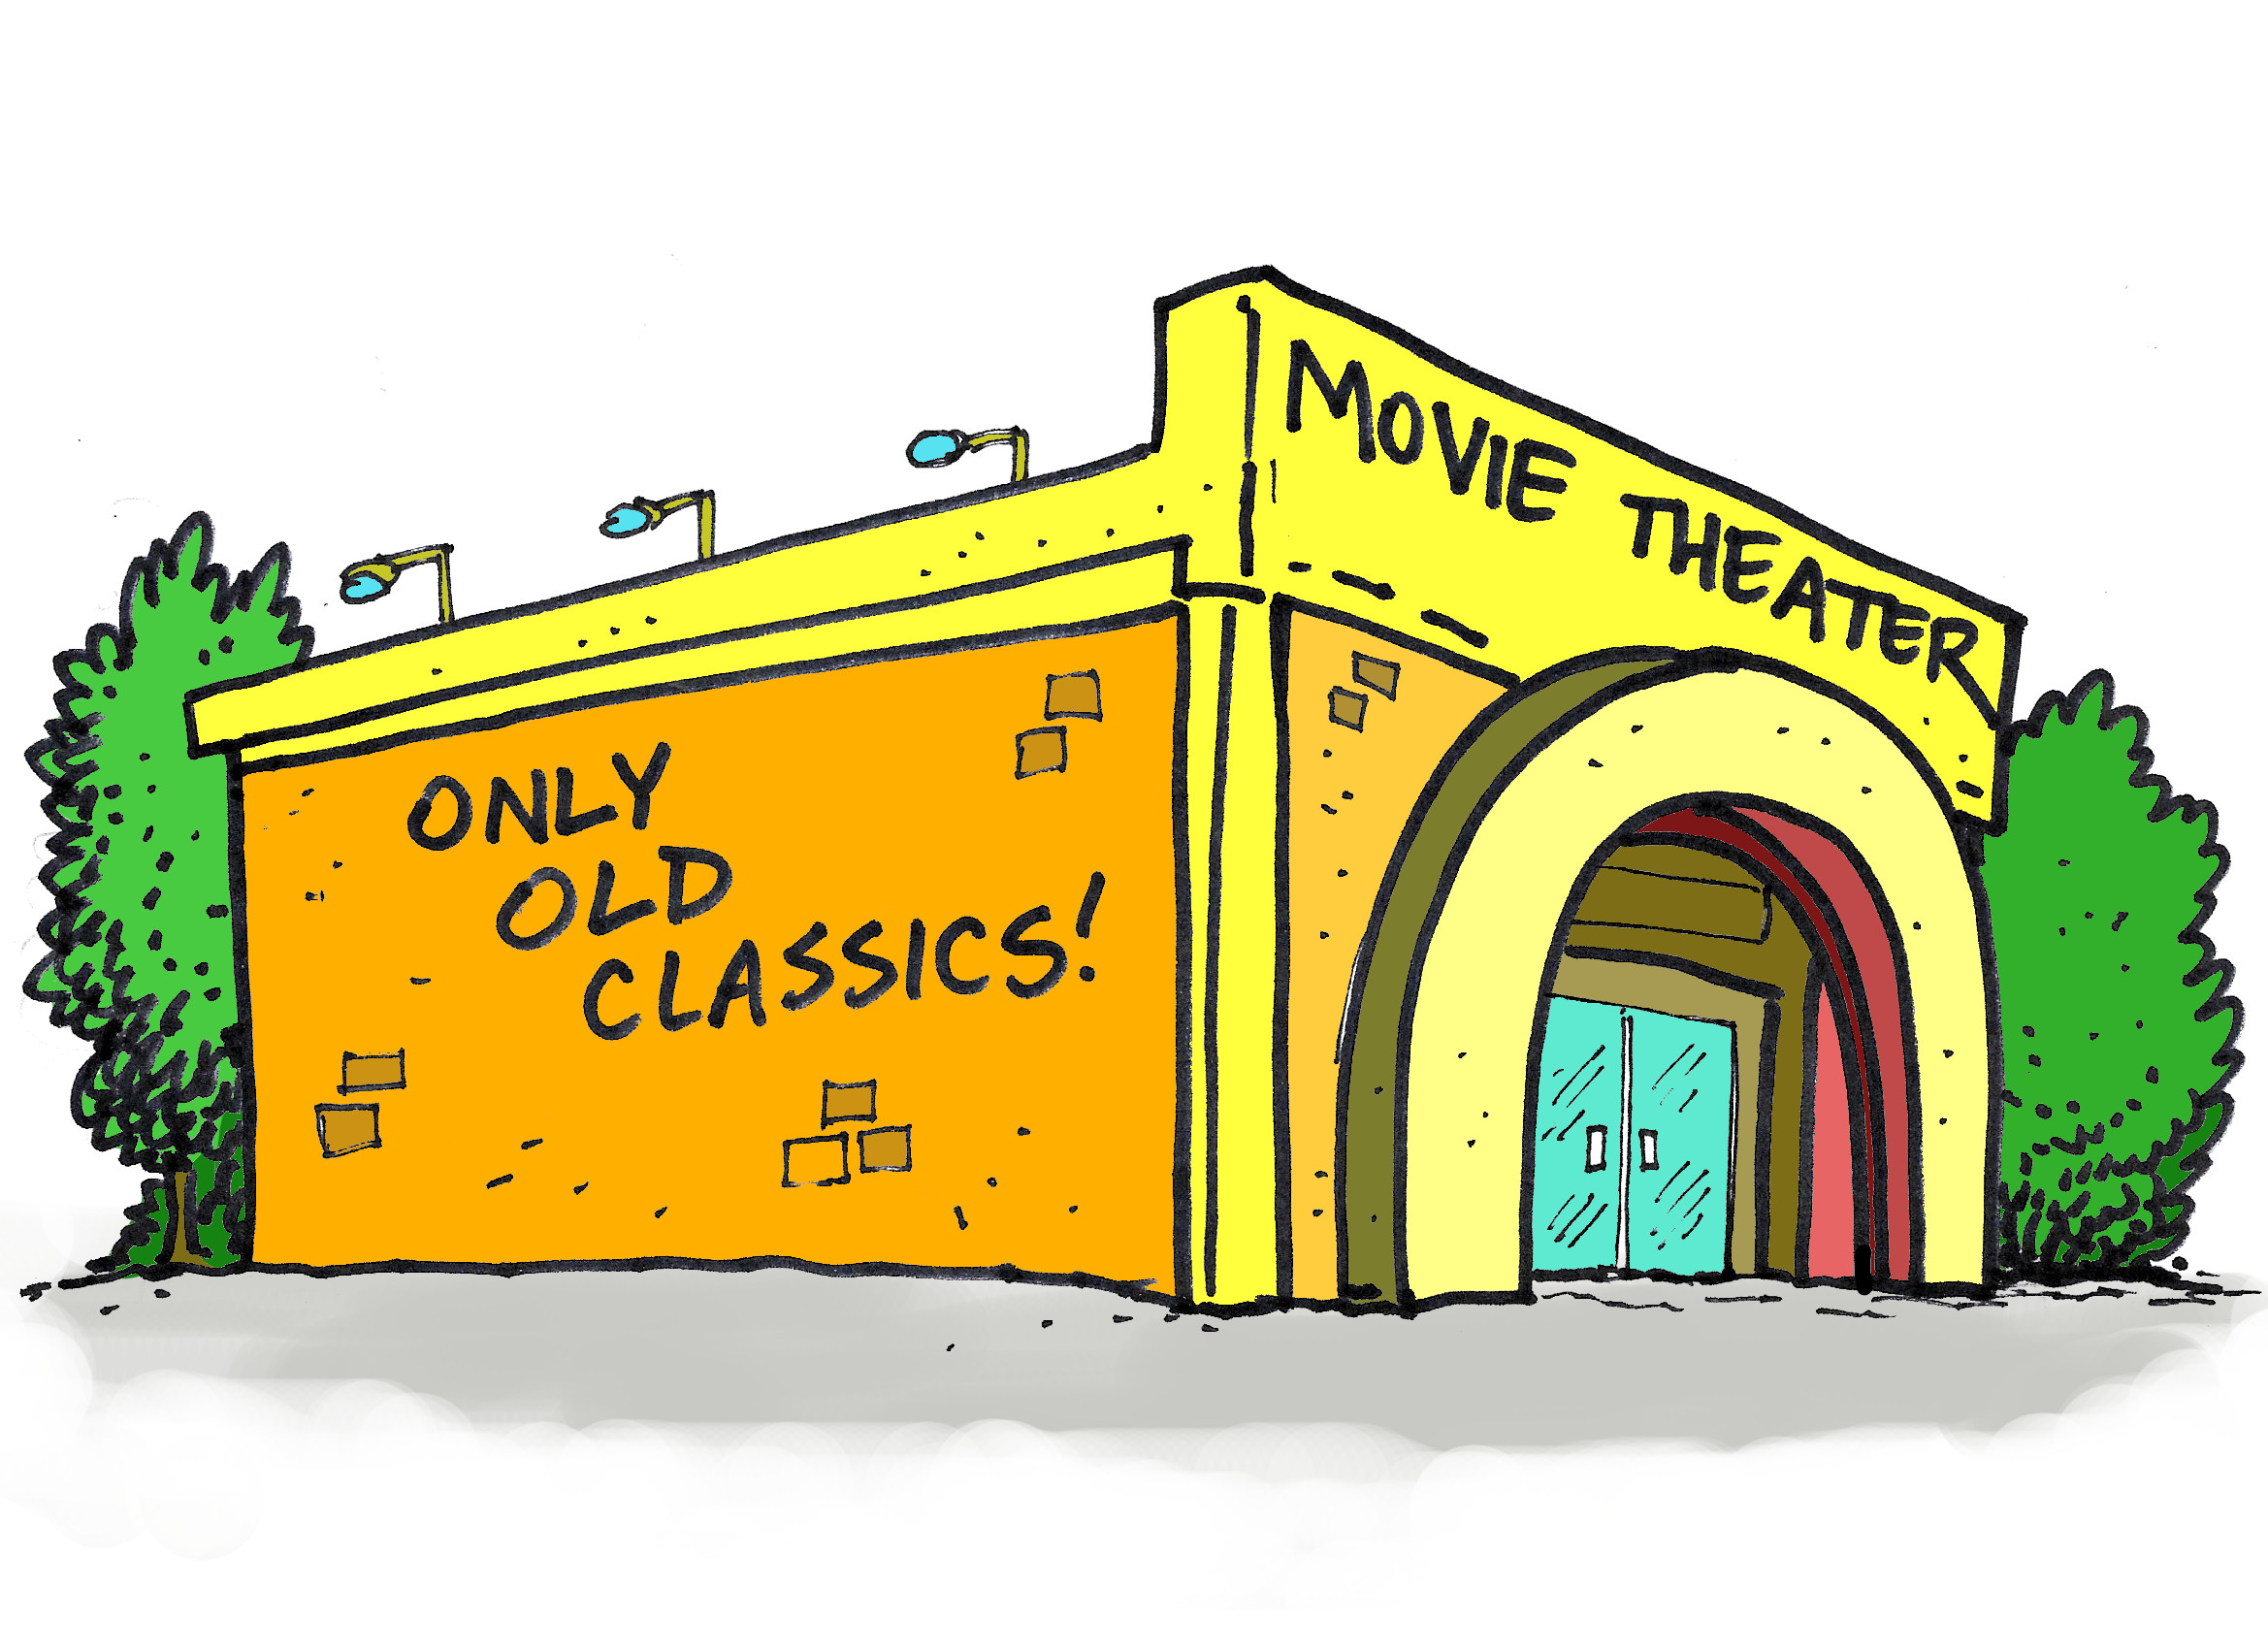 The theater where Ludosomnus and his friends watch and review old movies